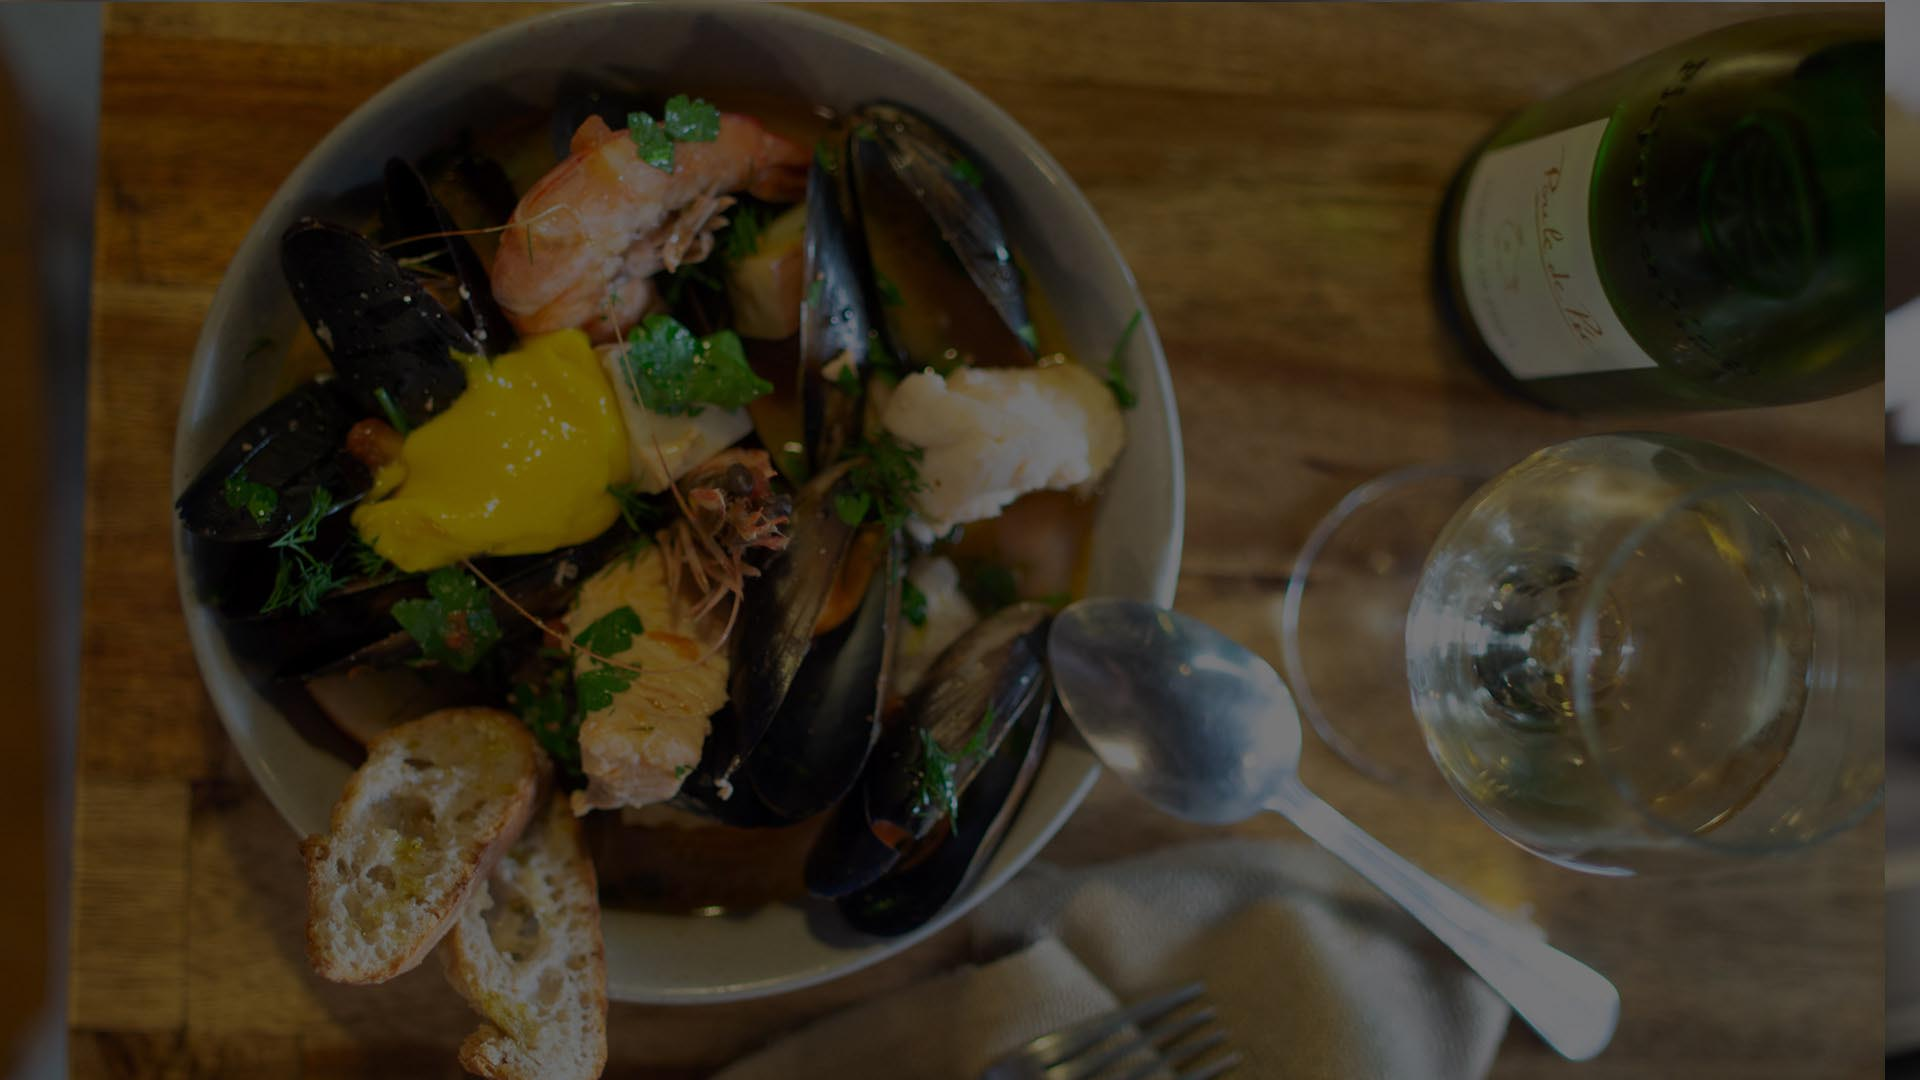 seafood bouillabaisse, crusty bread and wine